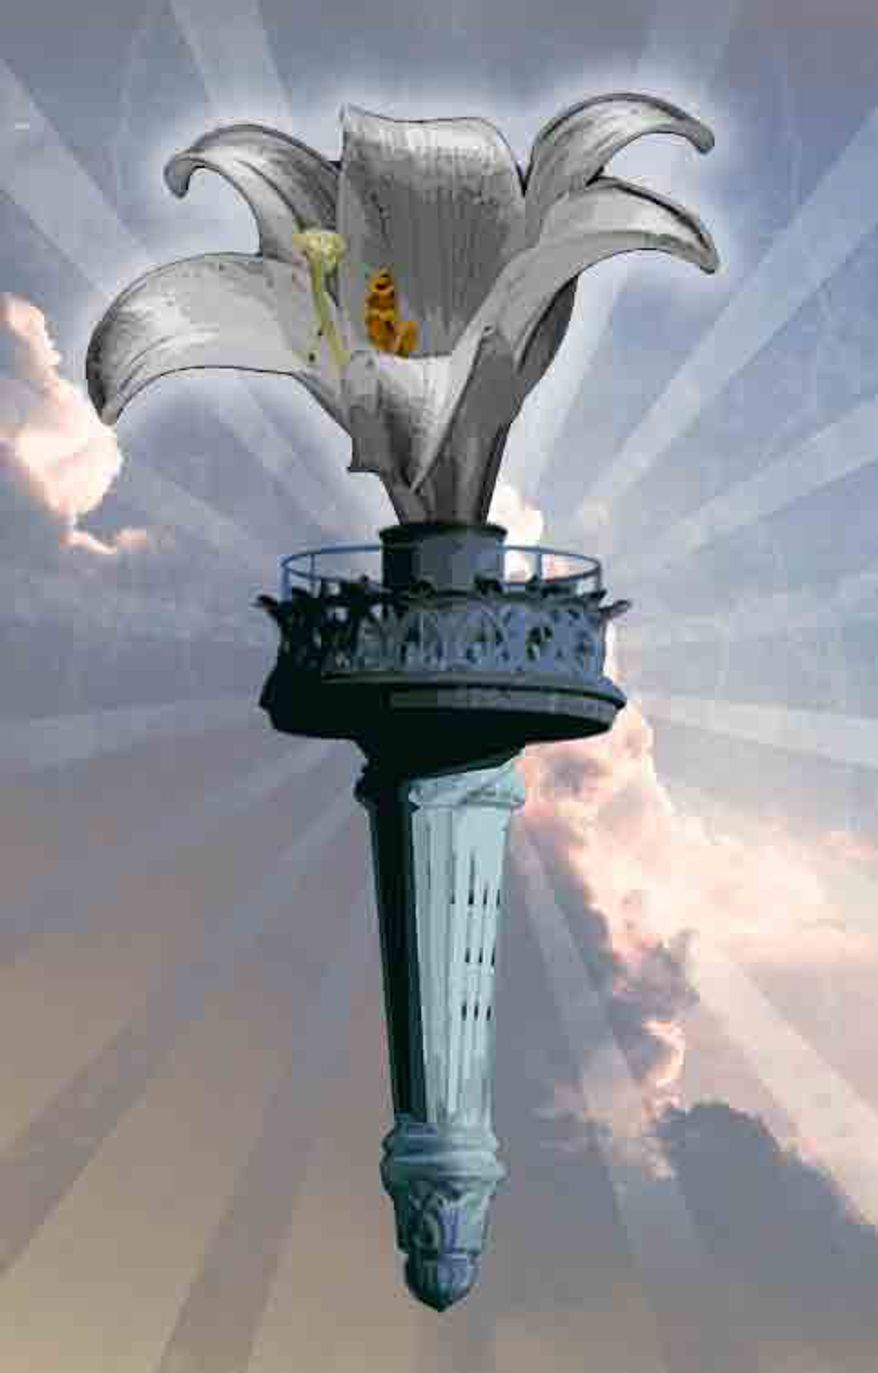 Illustration: Lily torch by Greg Groesch for The Washington Times